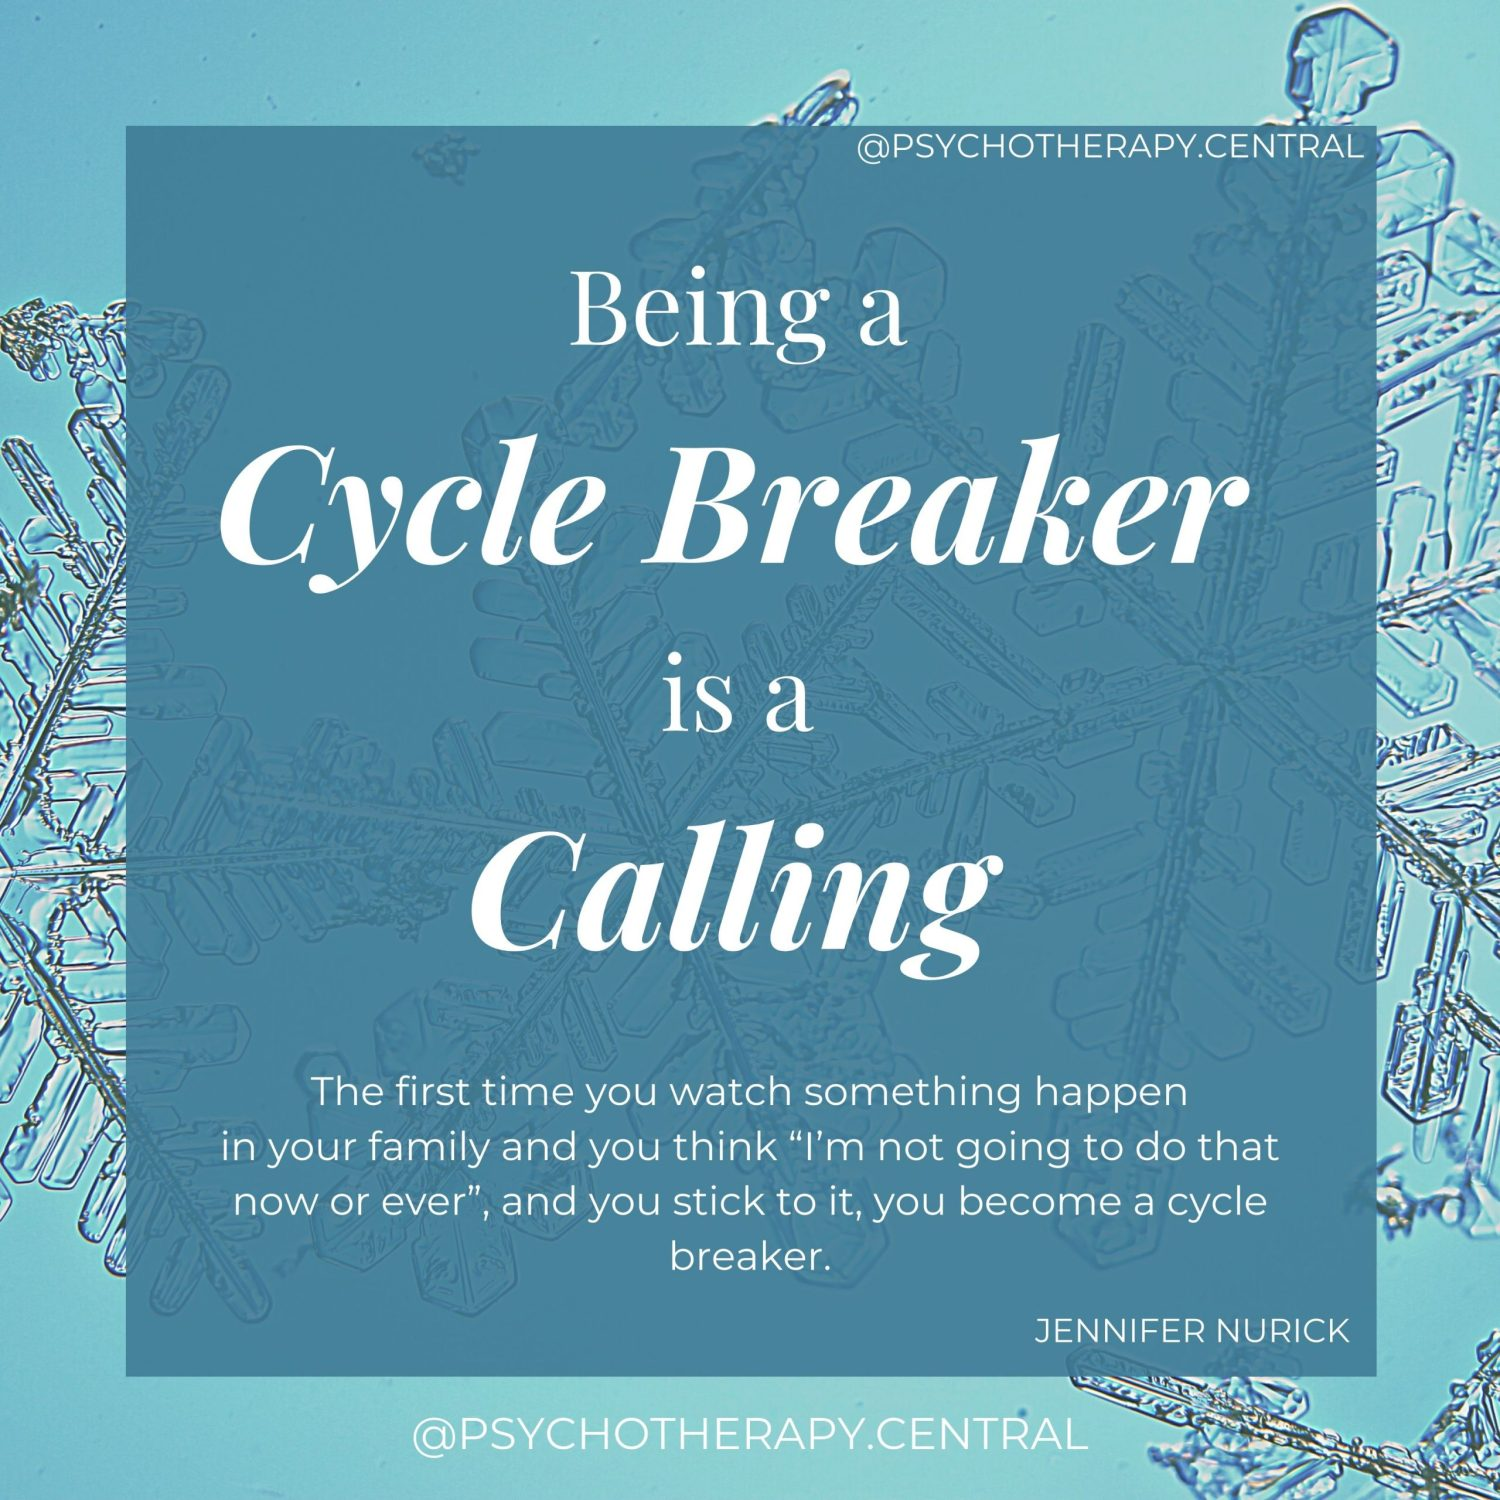 Being a Cycle Breaker is a Calling